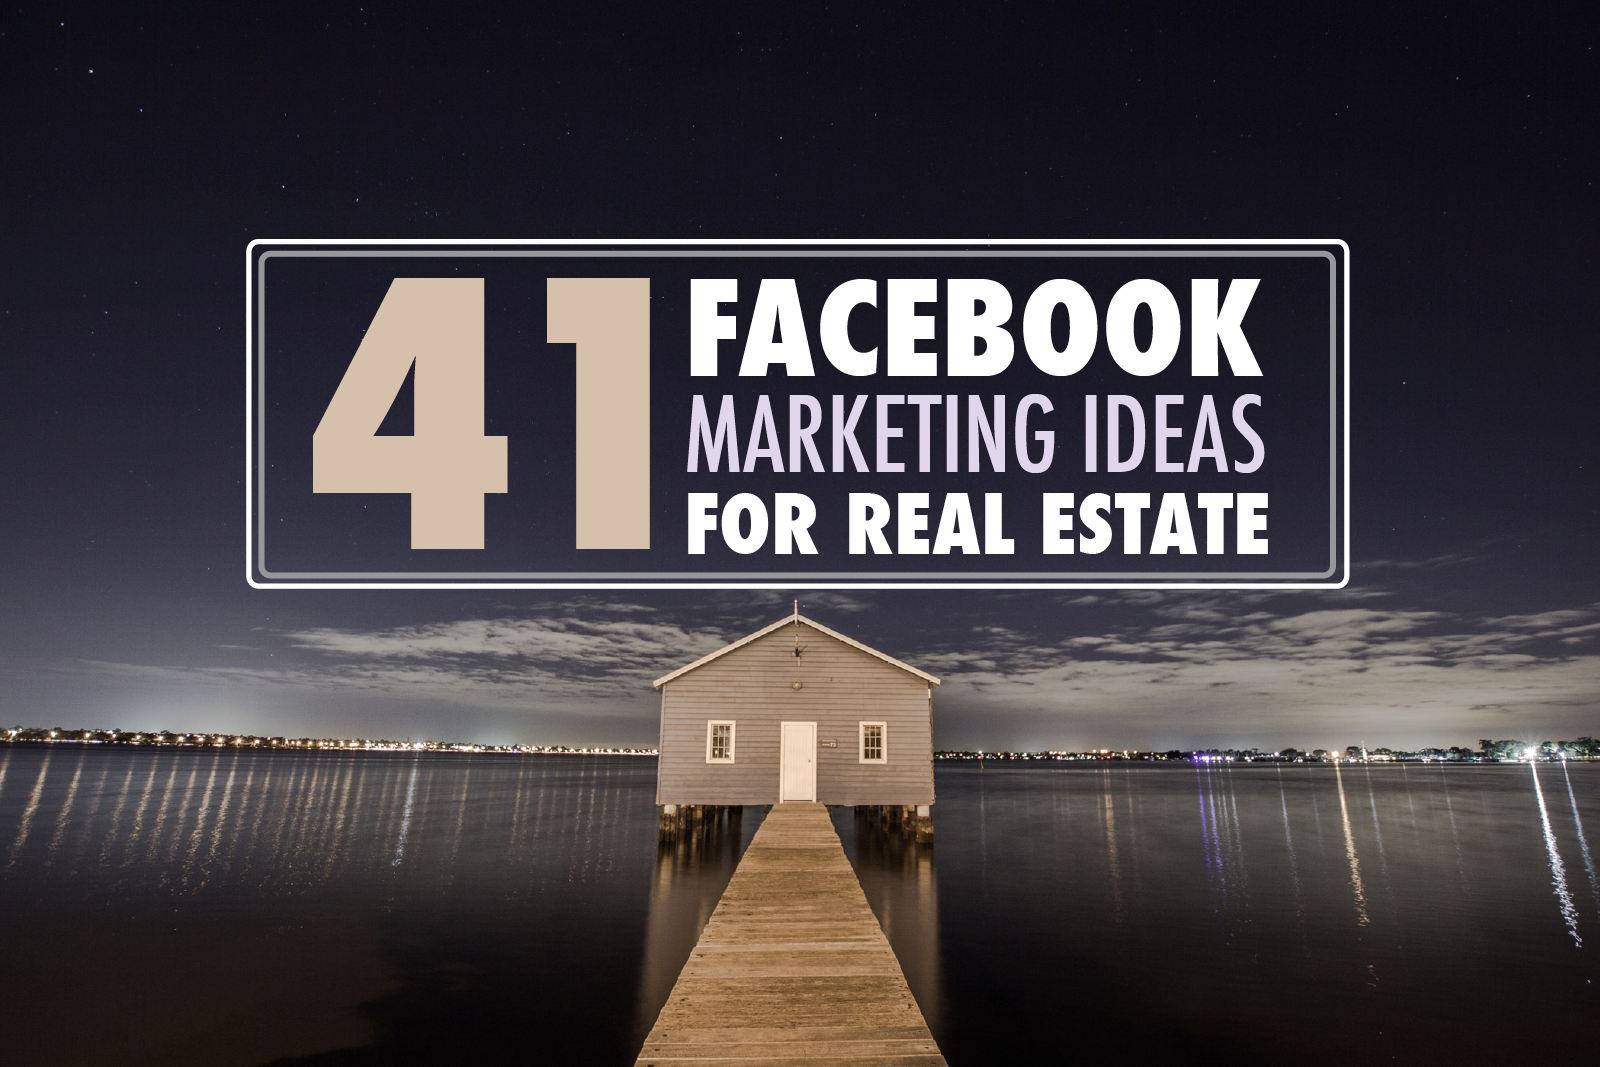 41 facebook marketing ideas for realtors it 39 s time to get for Real estate home ideas